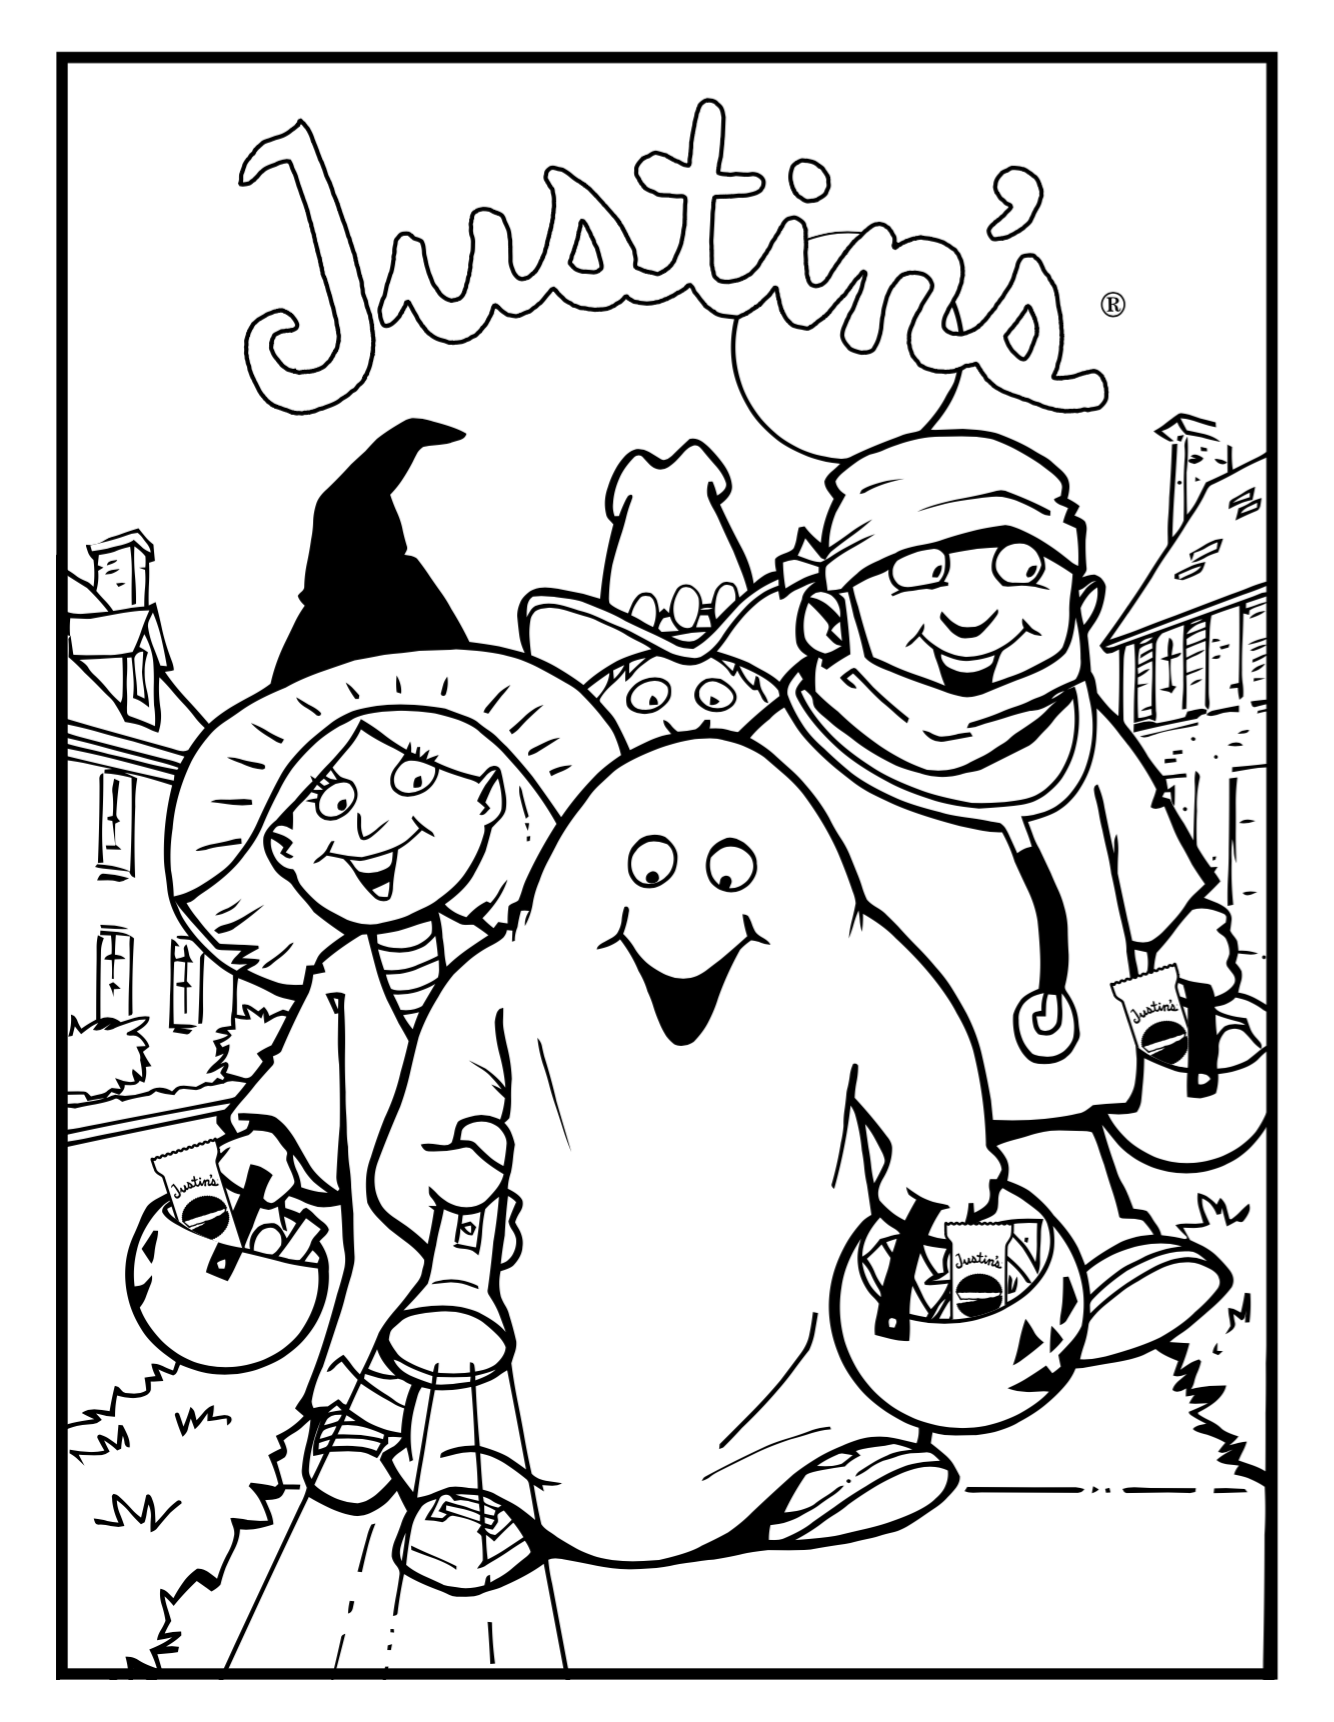 coloring pages halloween 30 cute halloween coloring pages for kids scribblefun halloween coloring pages